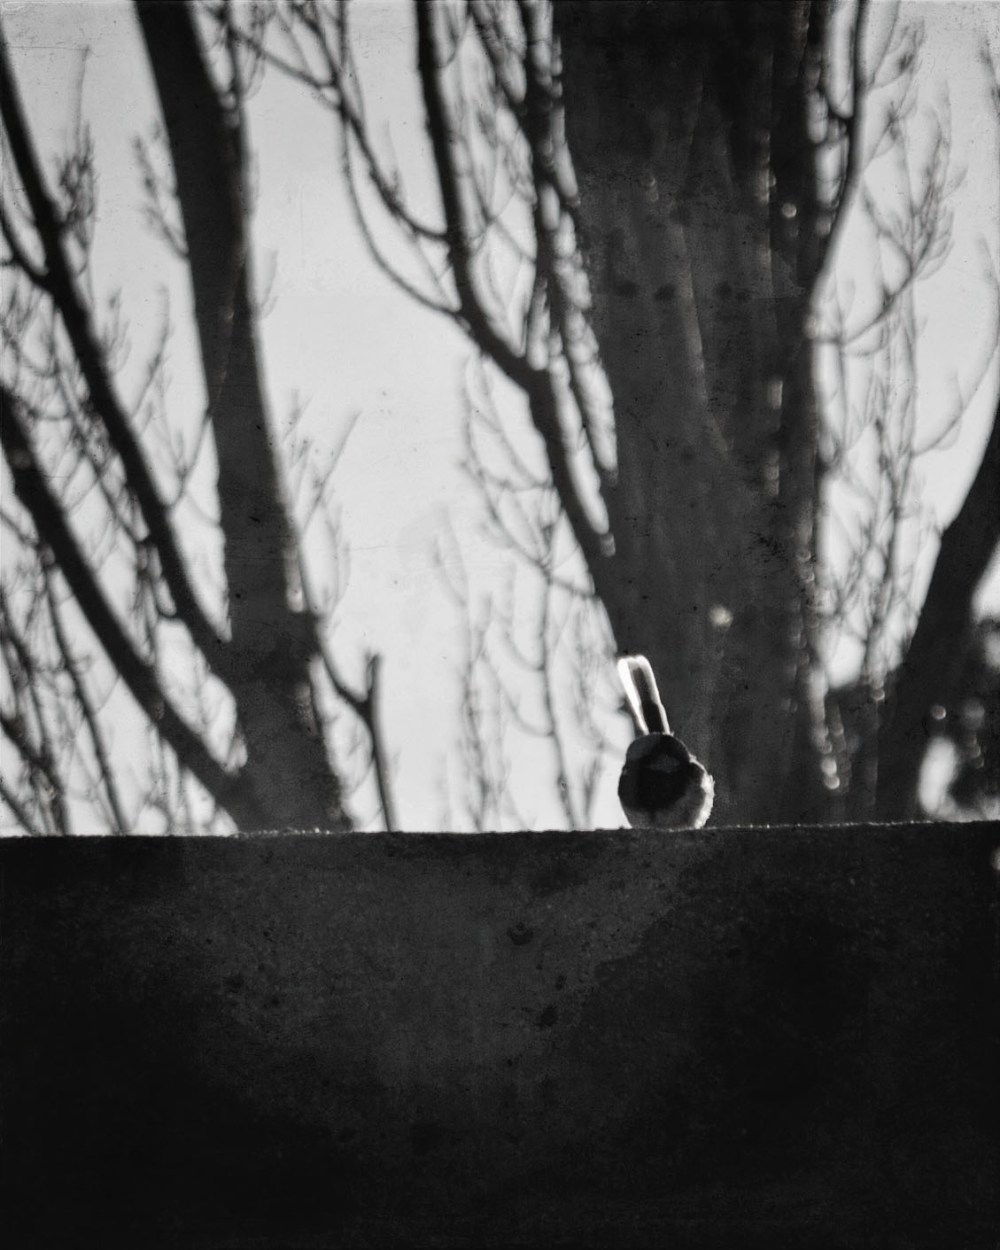 small-bird-on-a-fence